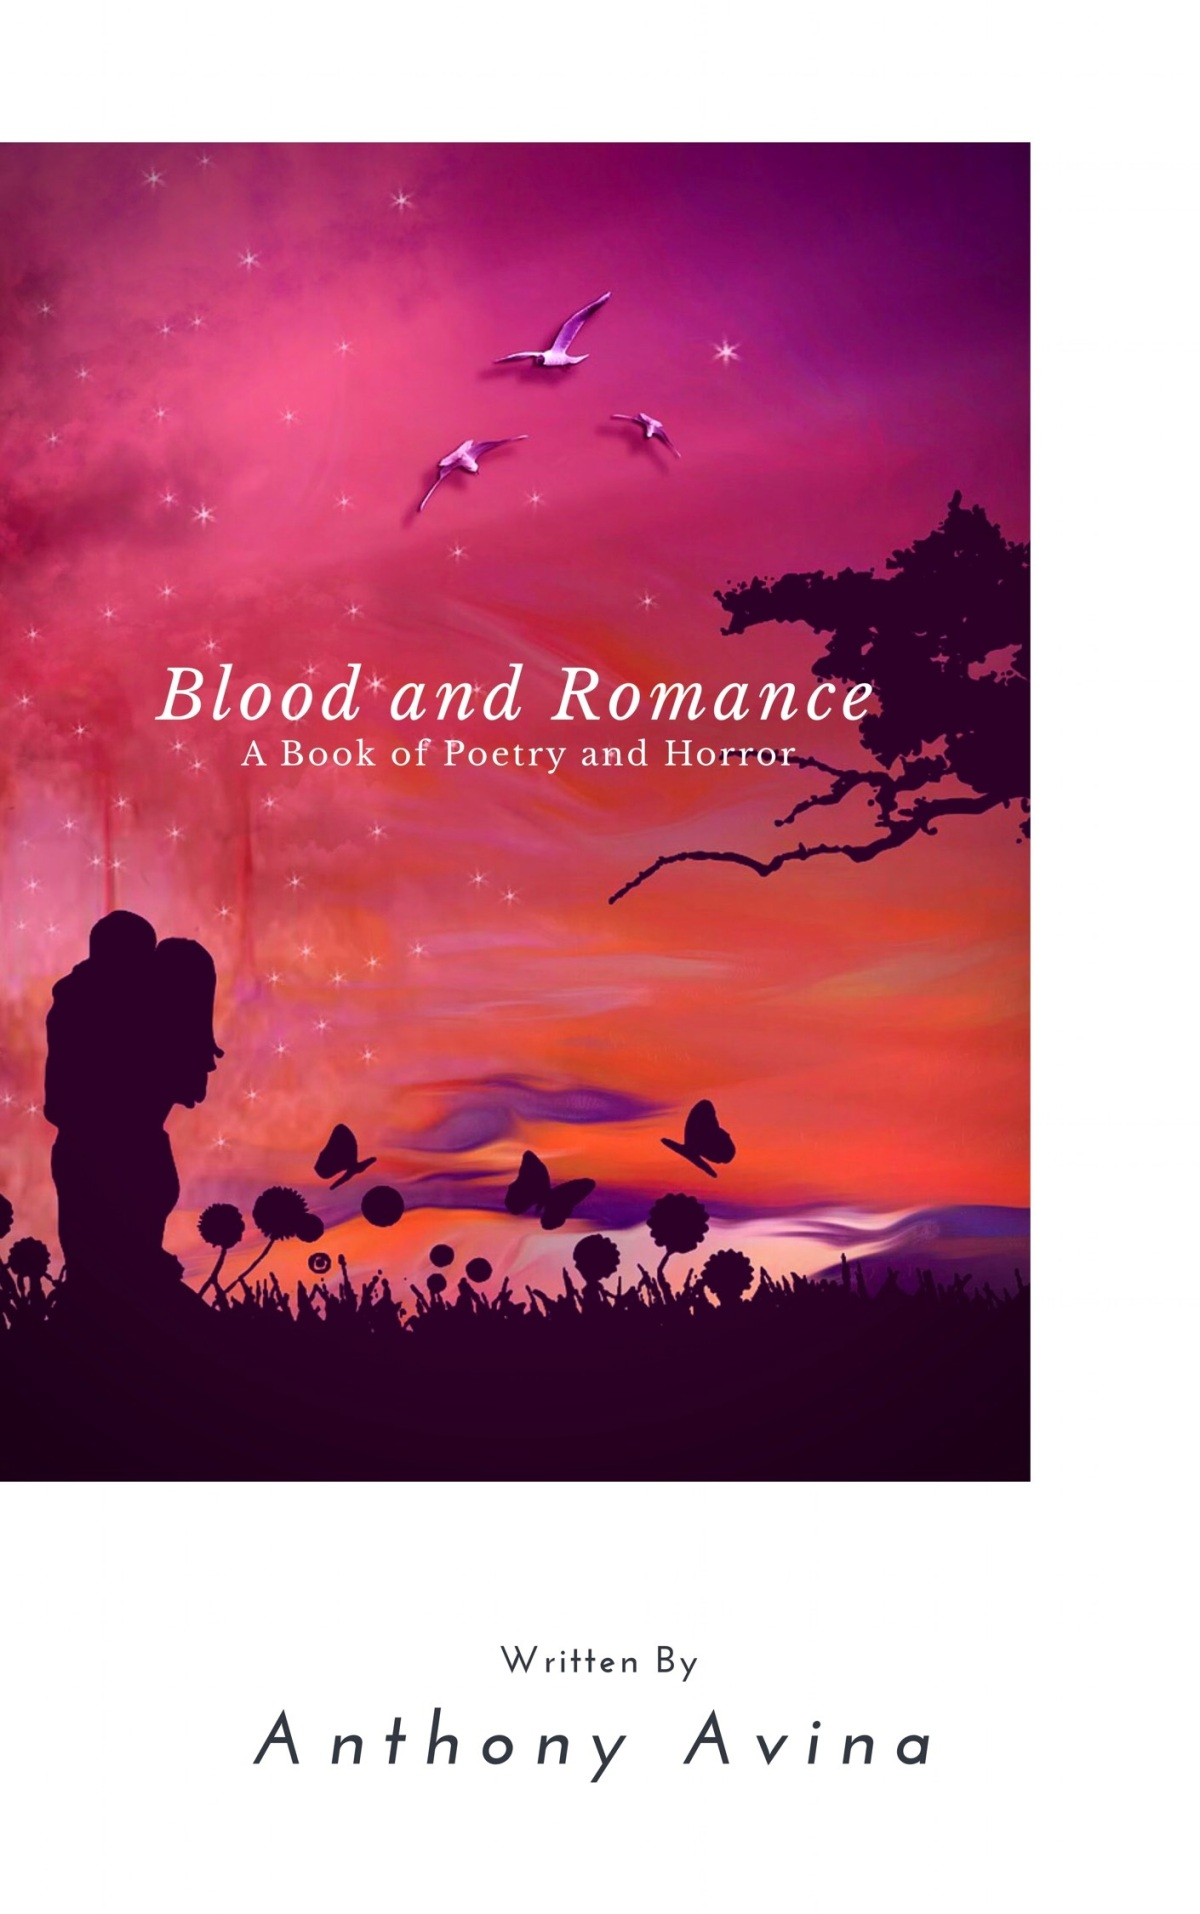 Book Release: Blood and Romance by Anthony Avina